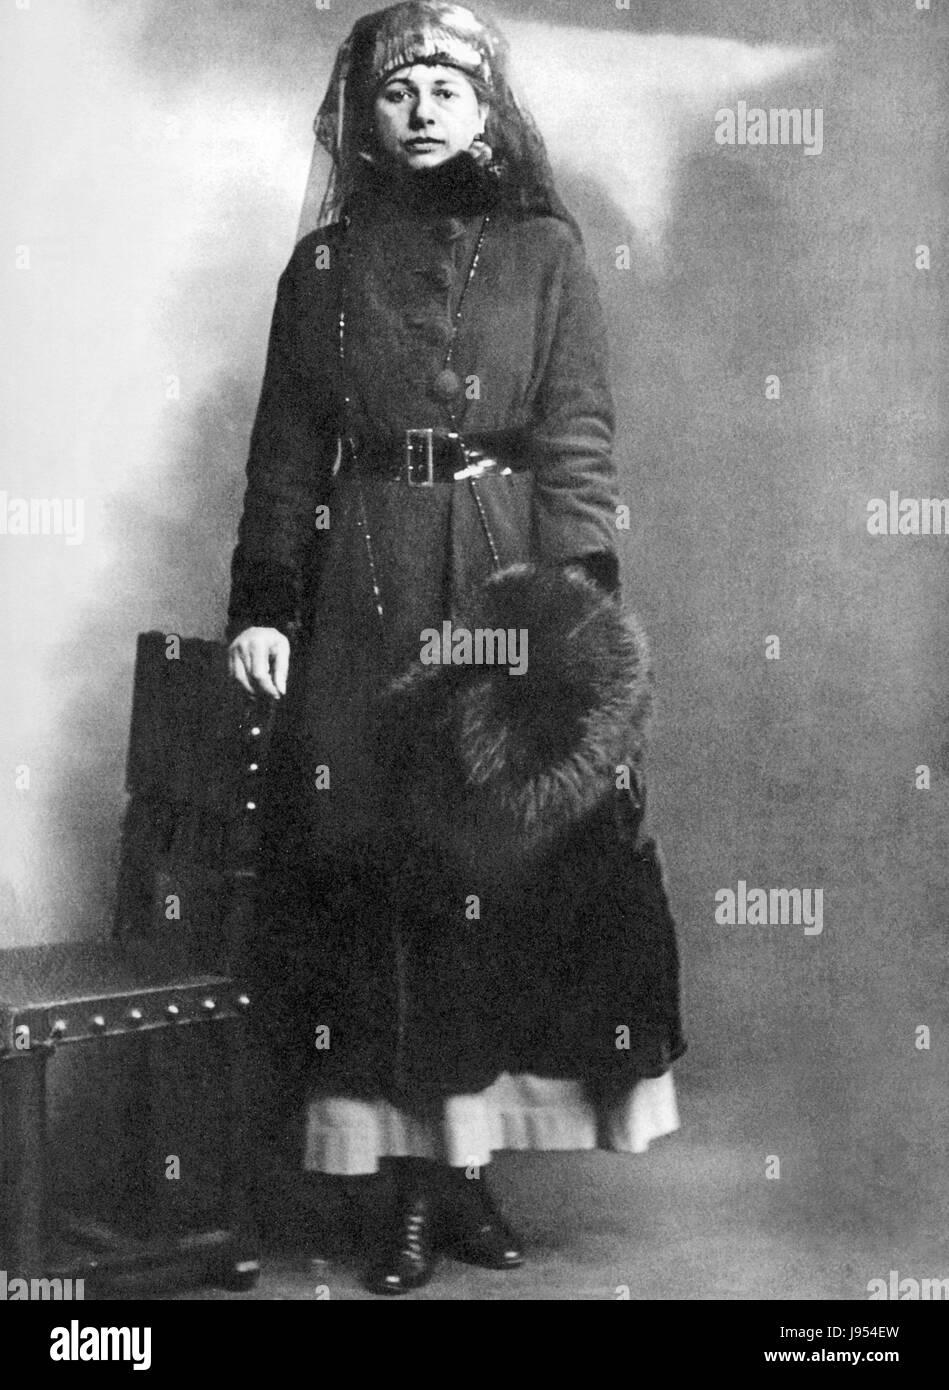 MATA HARI (1876-1917) Dutch dancer and German spy after her arrest in February 1917 - Stock Image